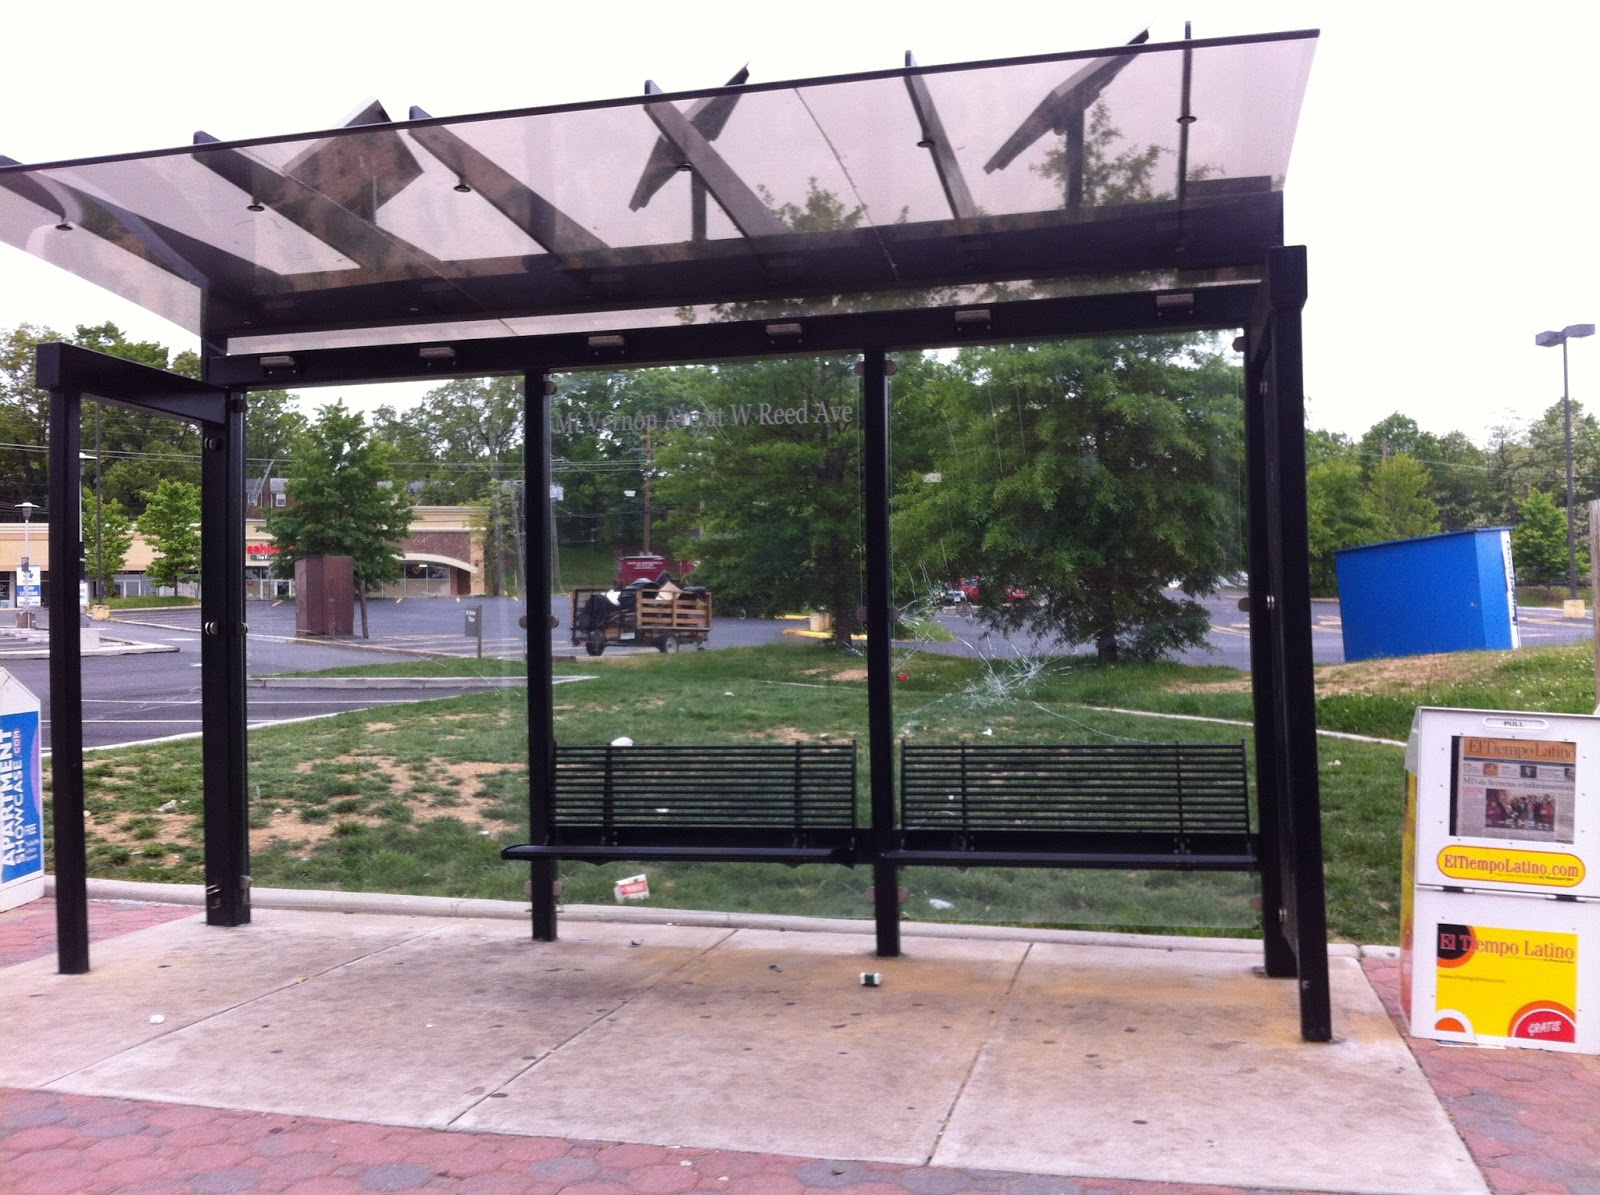 the arlandrian repeated vandalism of bus shelter prompts redesign